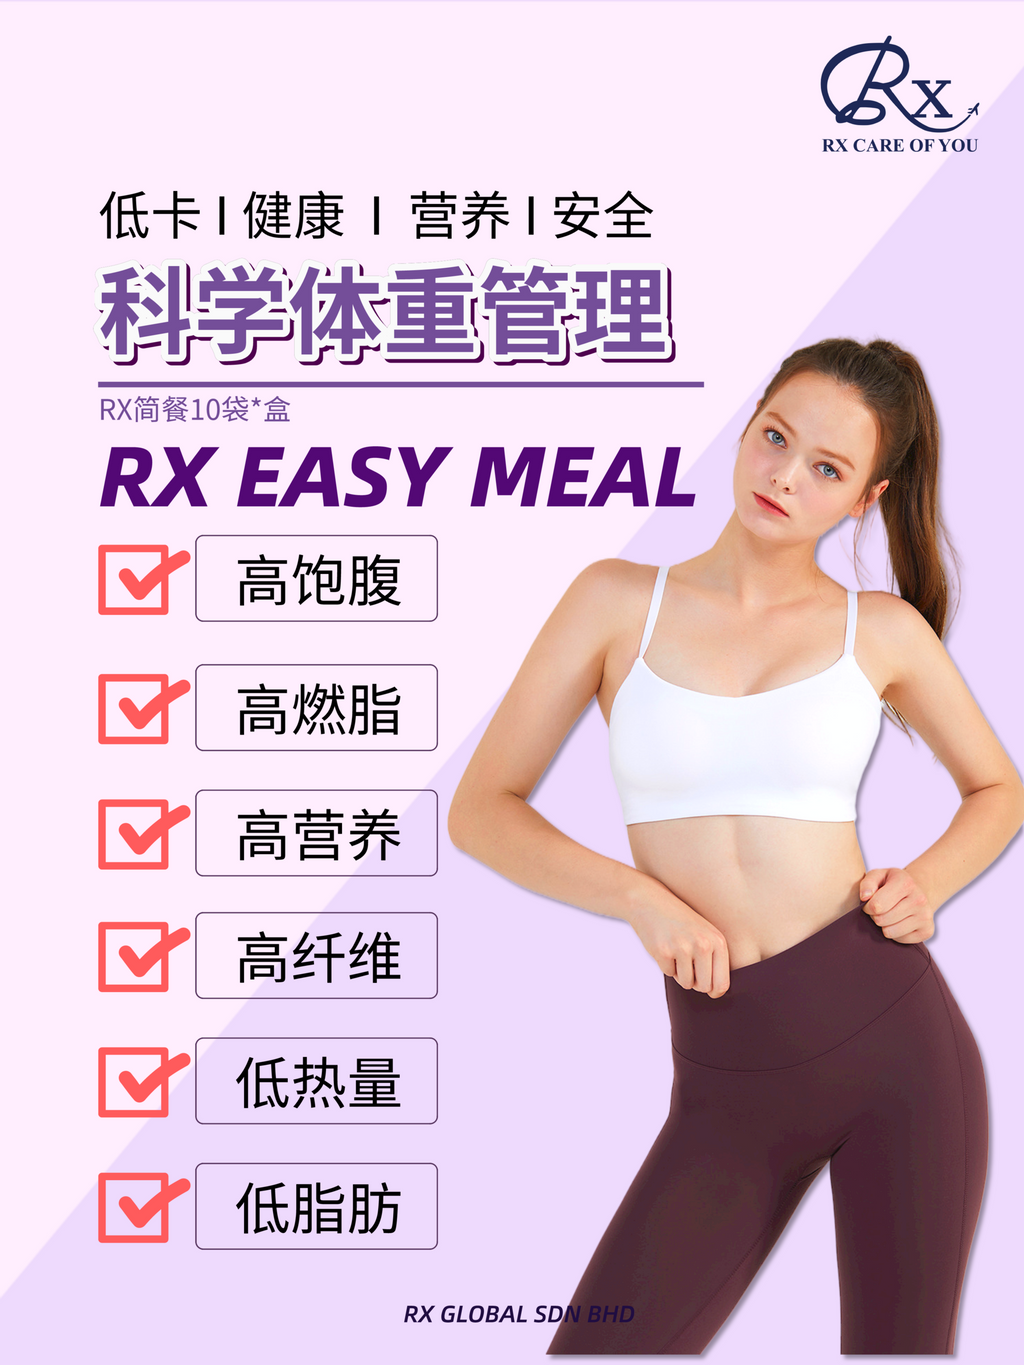 rx-easymeal1.png